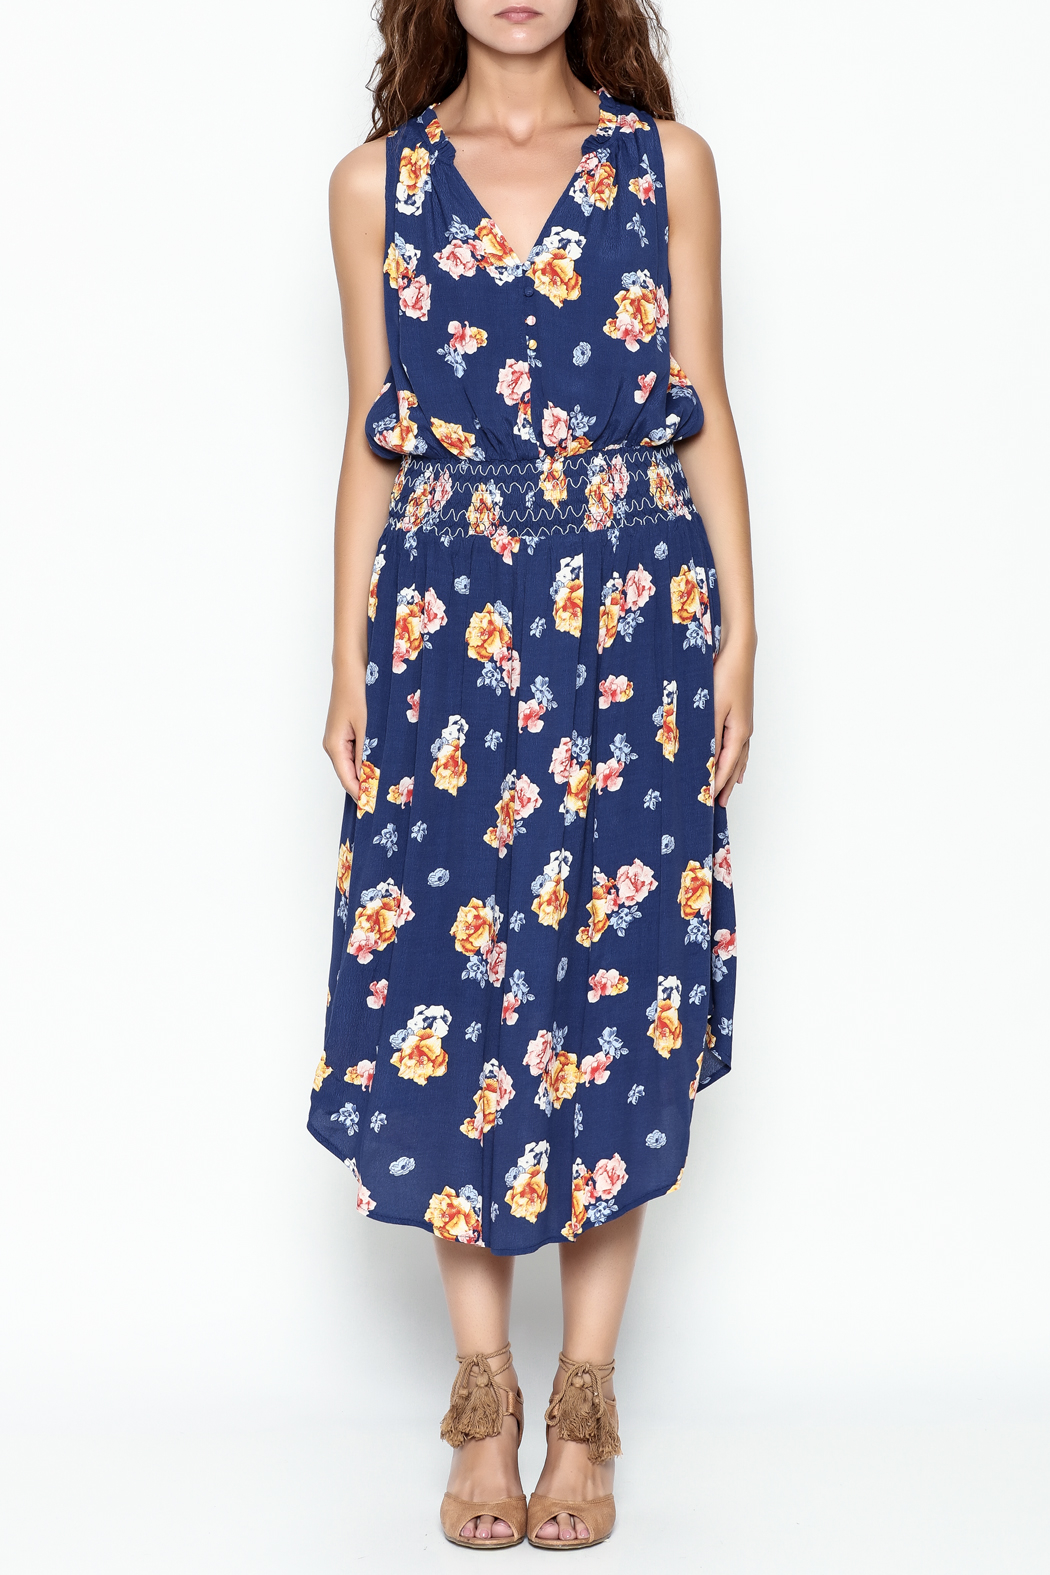 Current Air Bright Floral Dress - Front Full Image